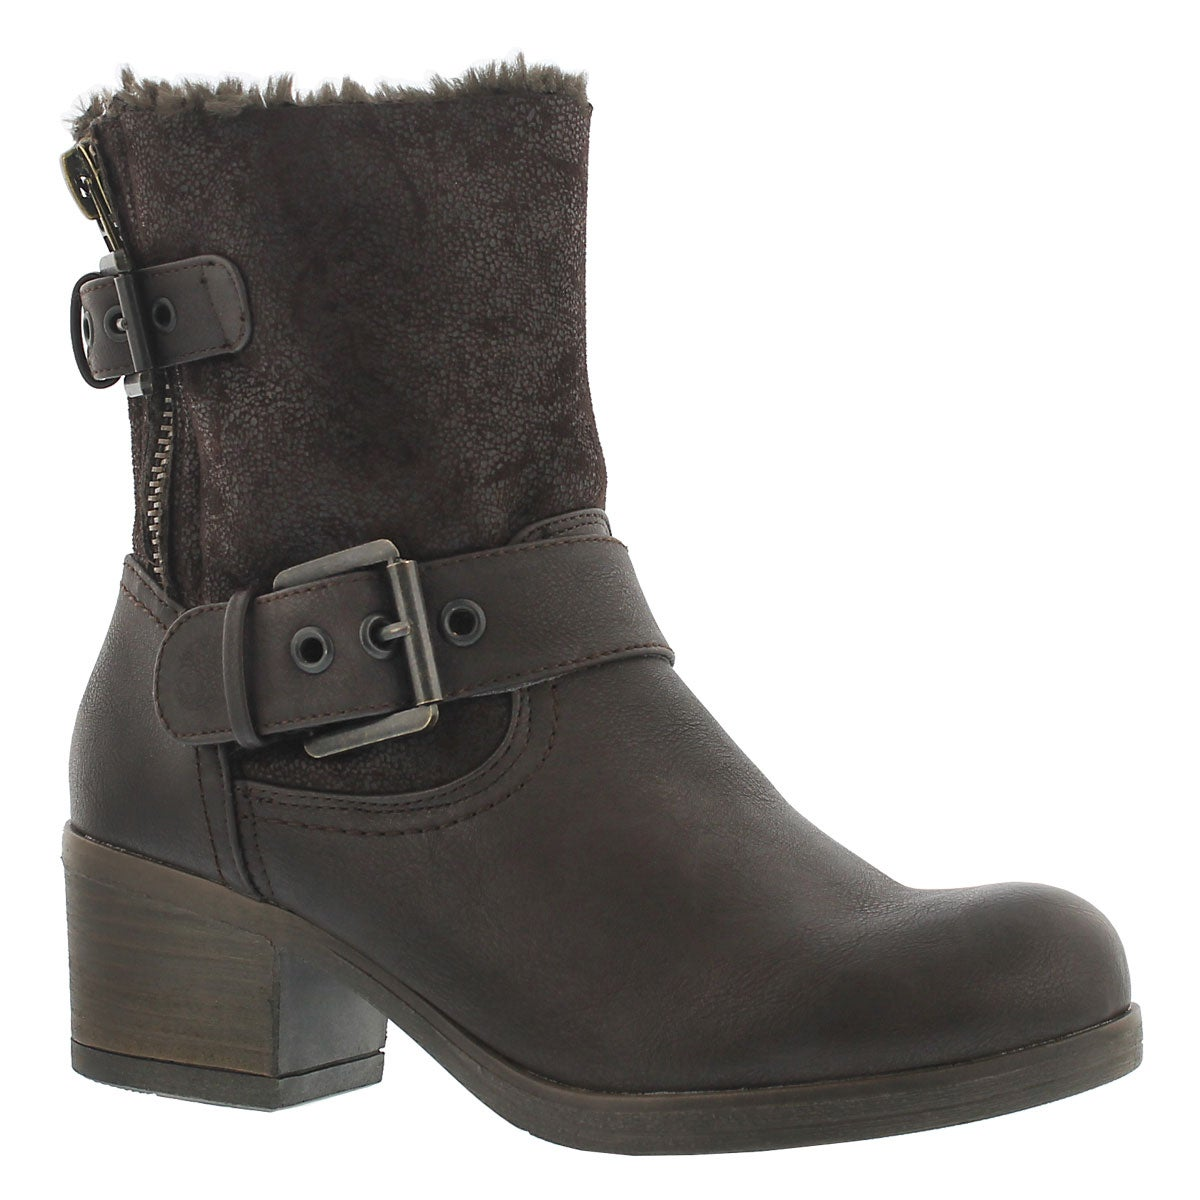 Women's BOBBI JO2 brown casual booties